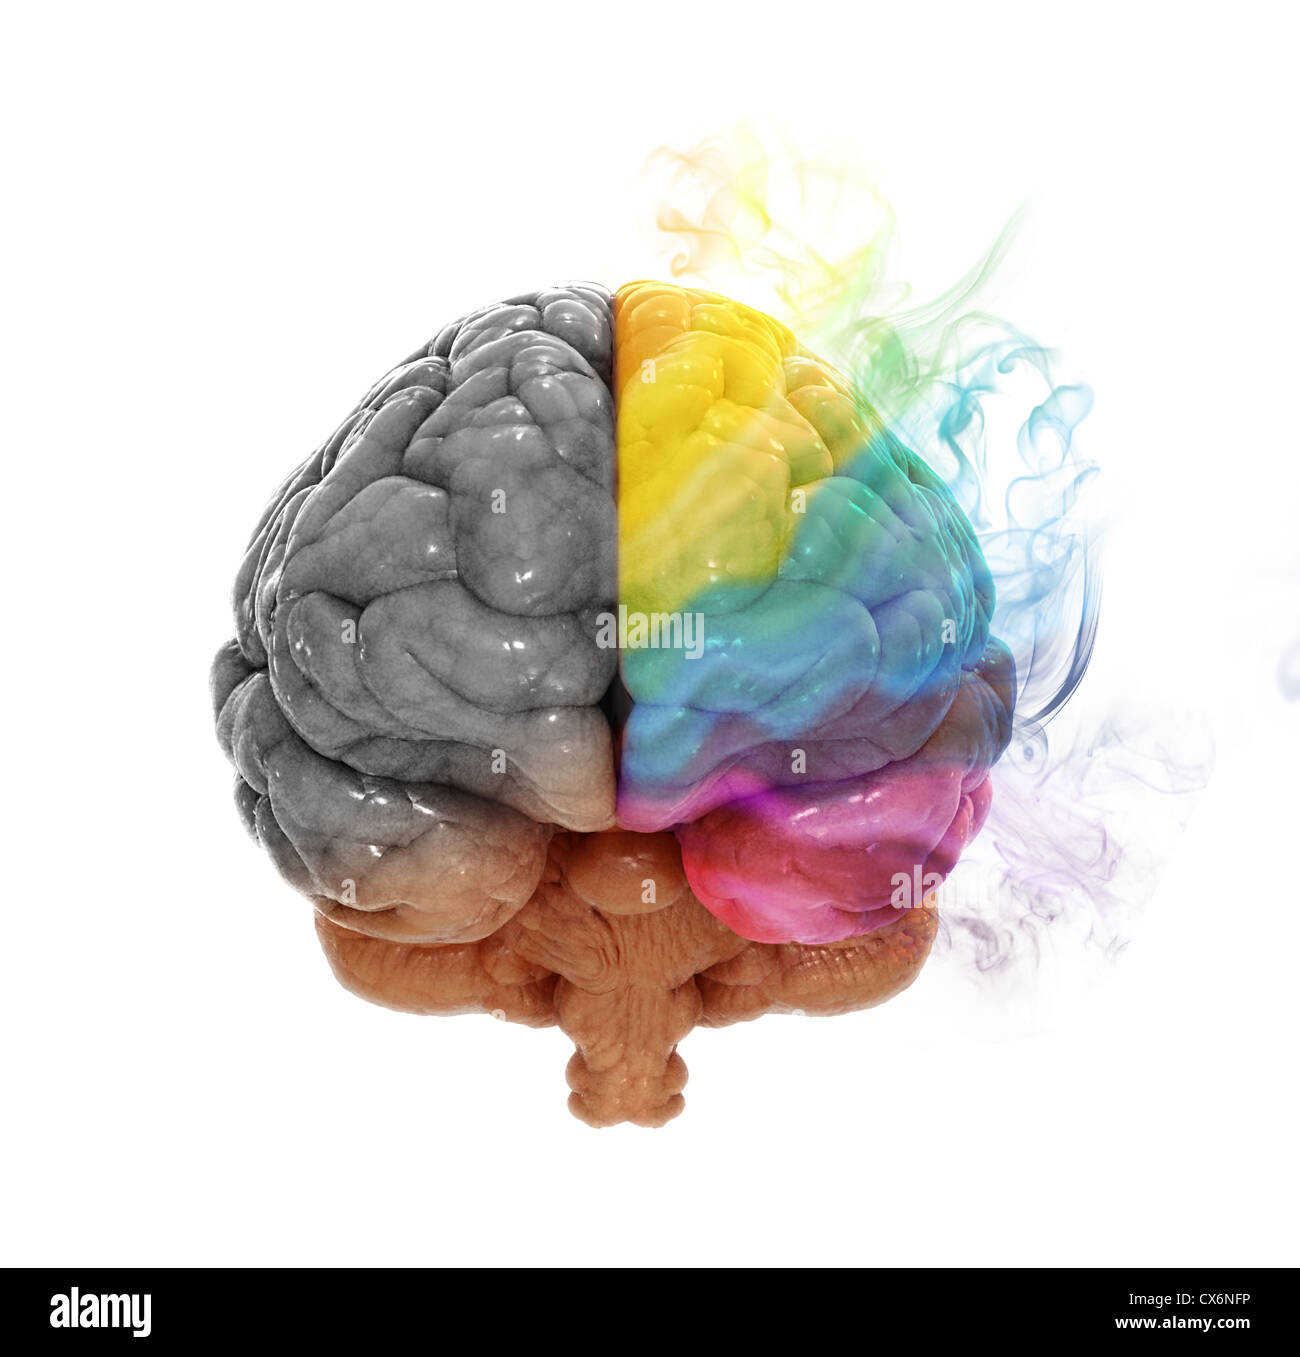 Right and left cerebral hemispheres - creativity and analytical thinking concept - Stock Image